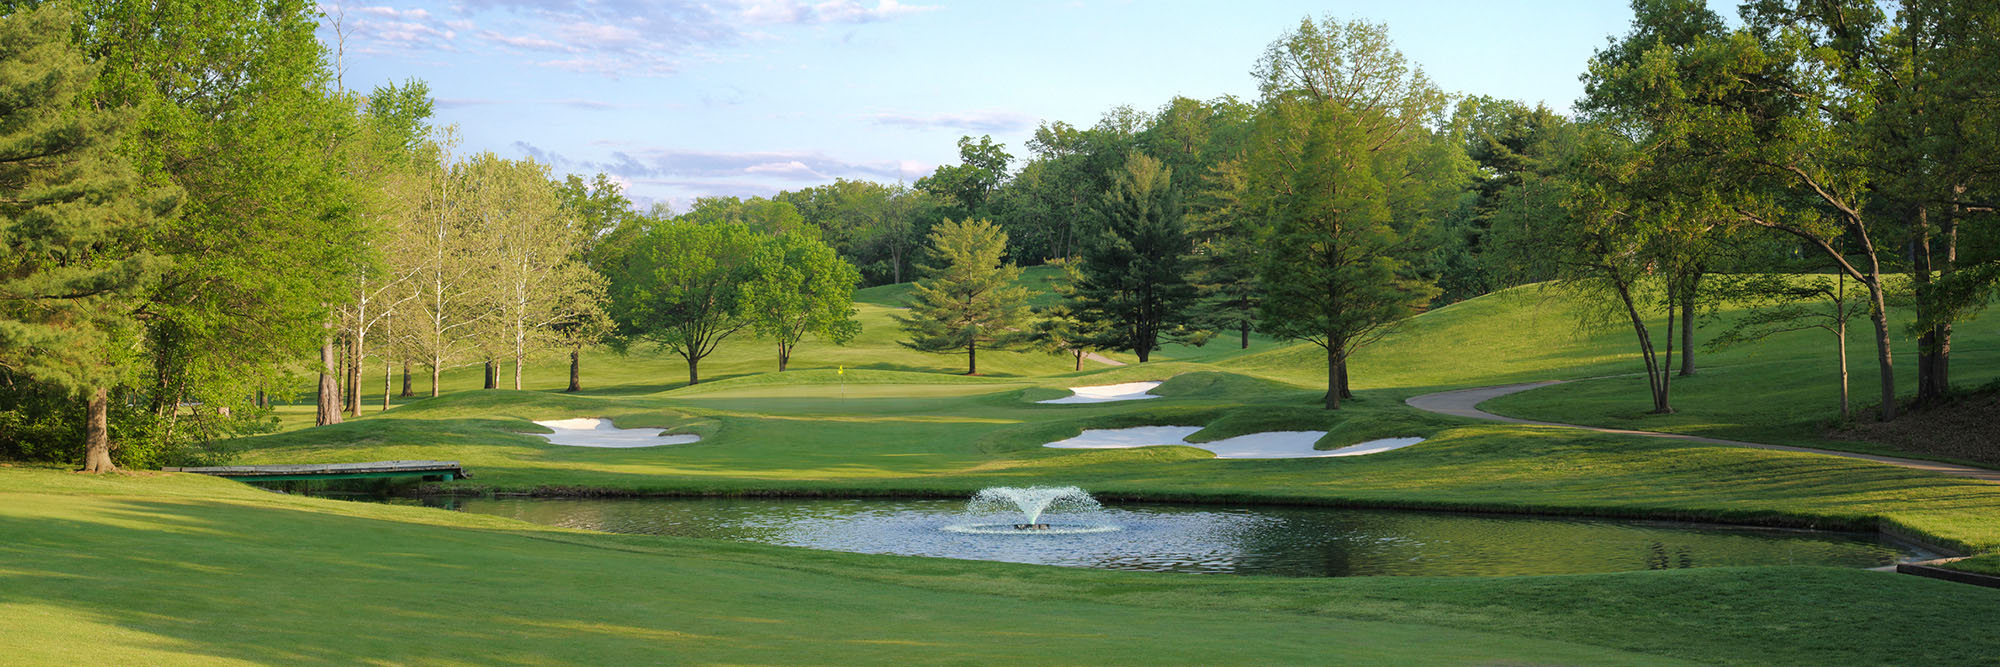 Golf Course Image - Forest Hills Country Club No. 17